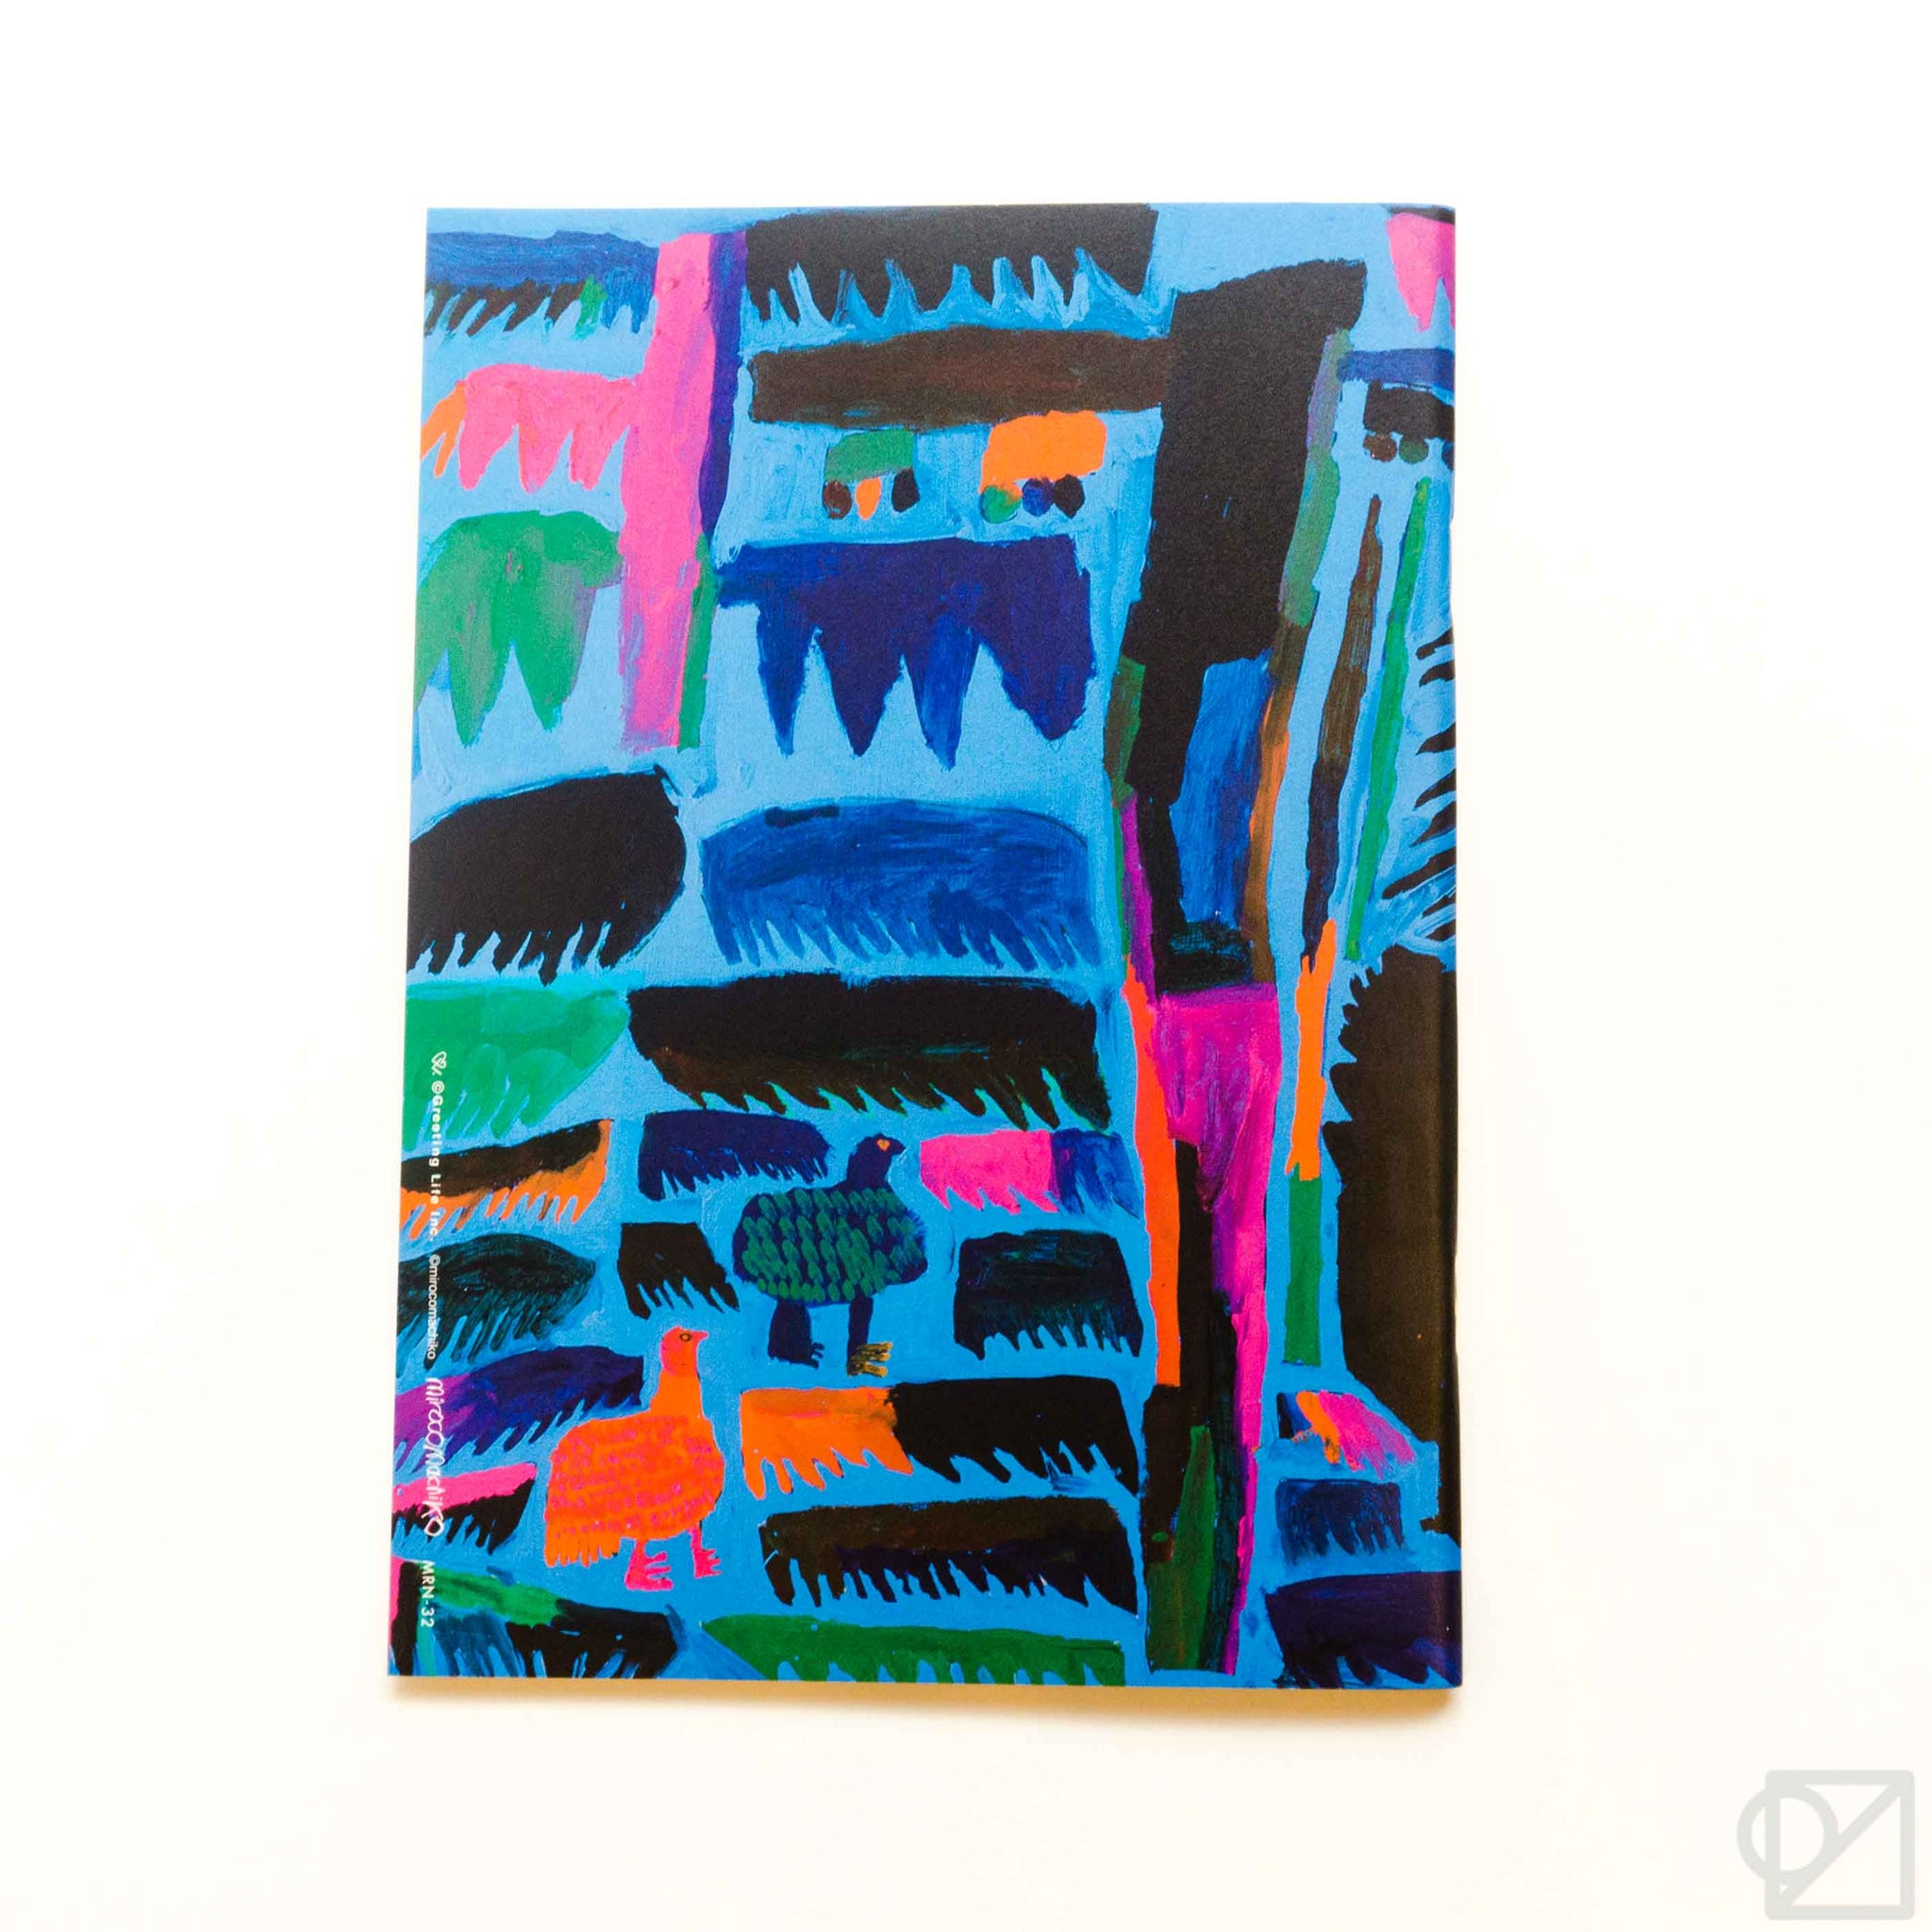 Miroco Machiko A5 Notebooks